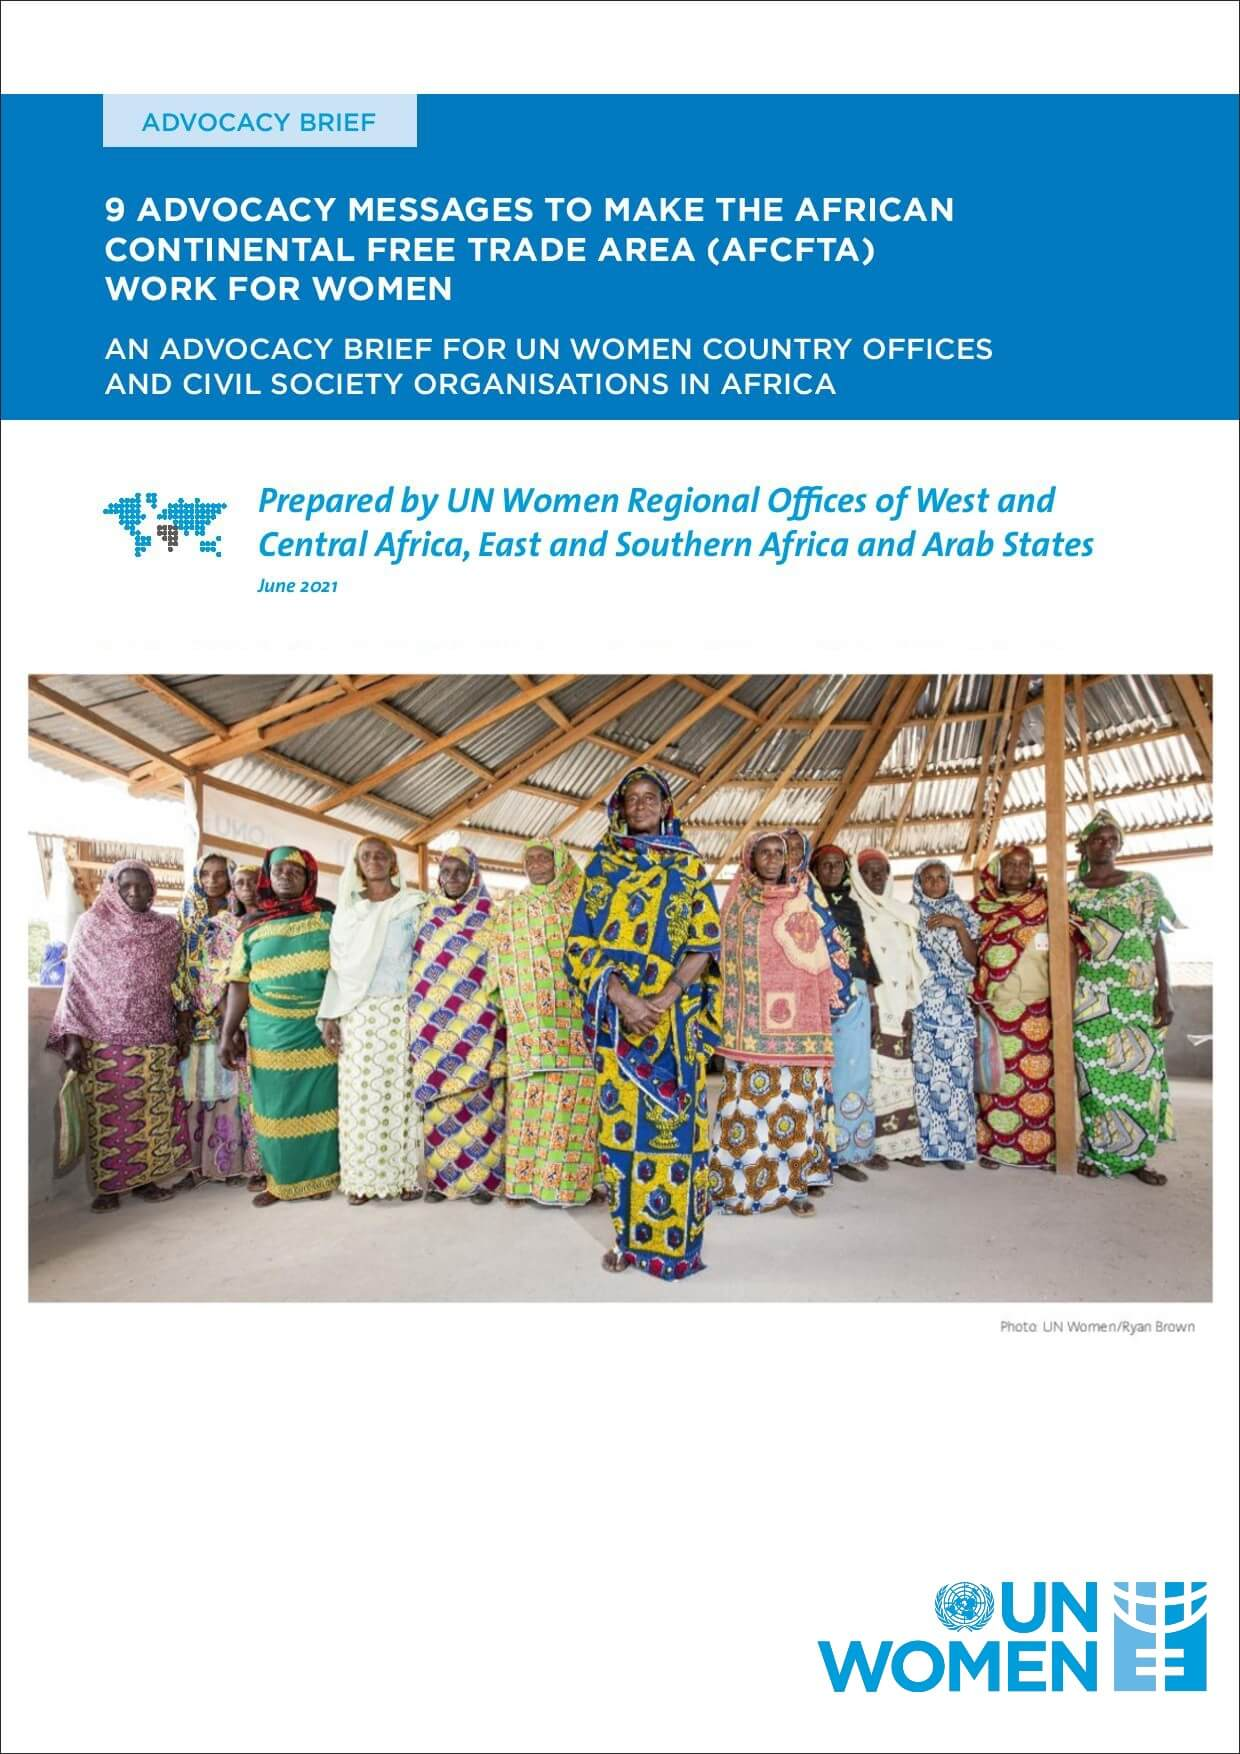 9 Advocacy Messages To Make The African Continental Free Trade Area (AFCFTA) Work For Women